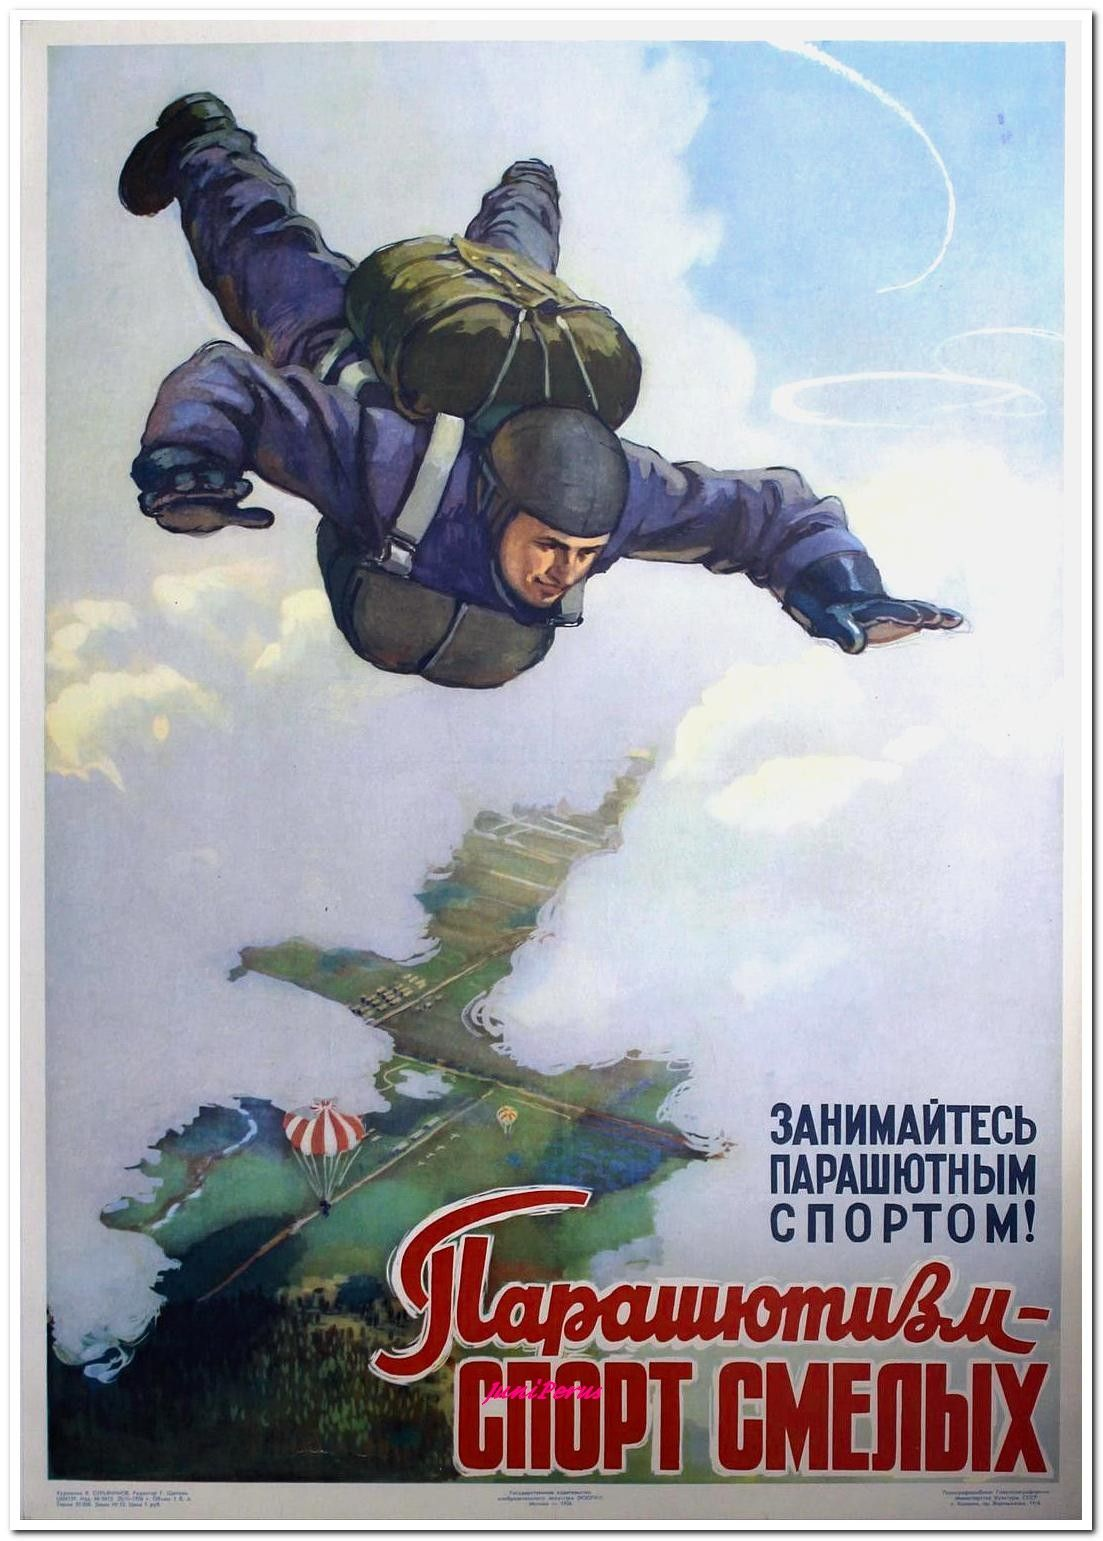 V. Suryaninov Soviet Poster Featuring Parachute Jumpers - Sport For The Brave , 1956